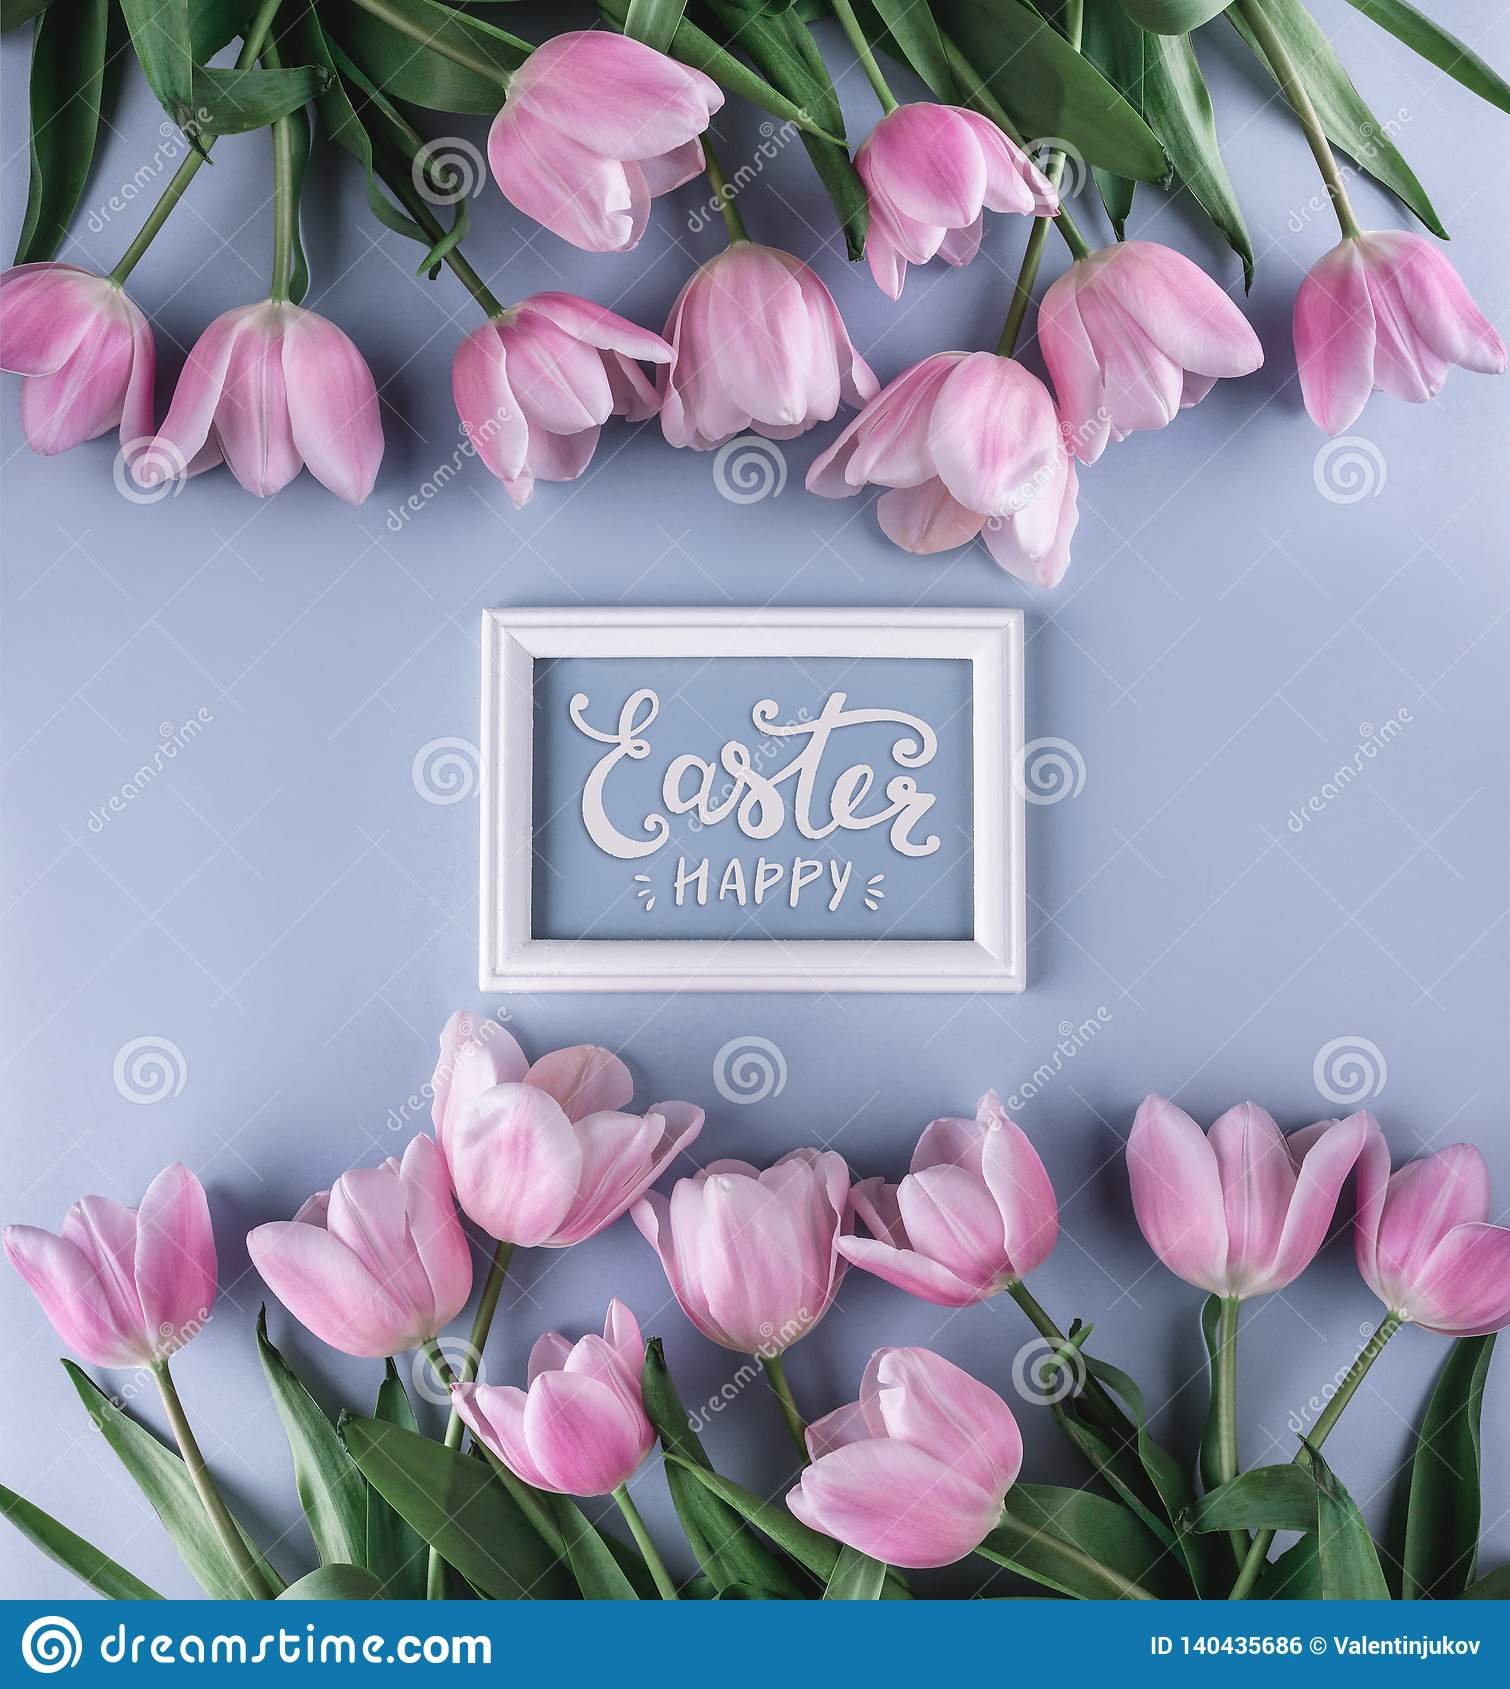 Pink tulips flowers on blue background with frame for text. Waiting for spring. Happy Easter card. Flat lay, top view